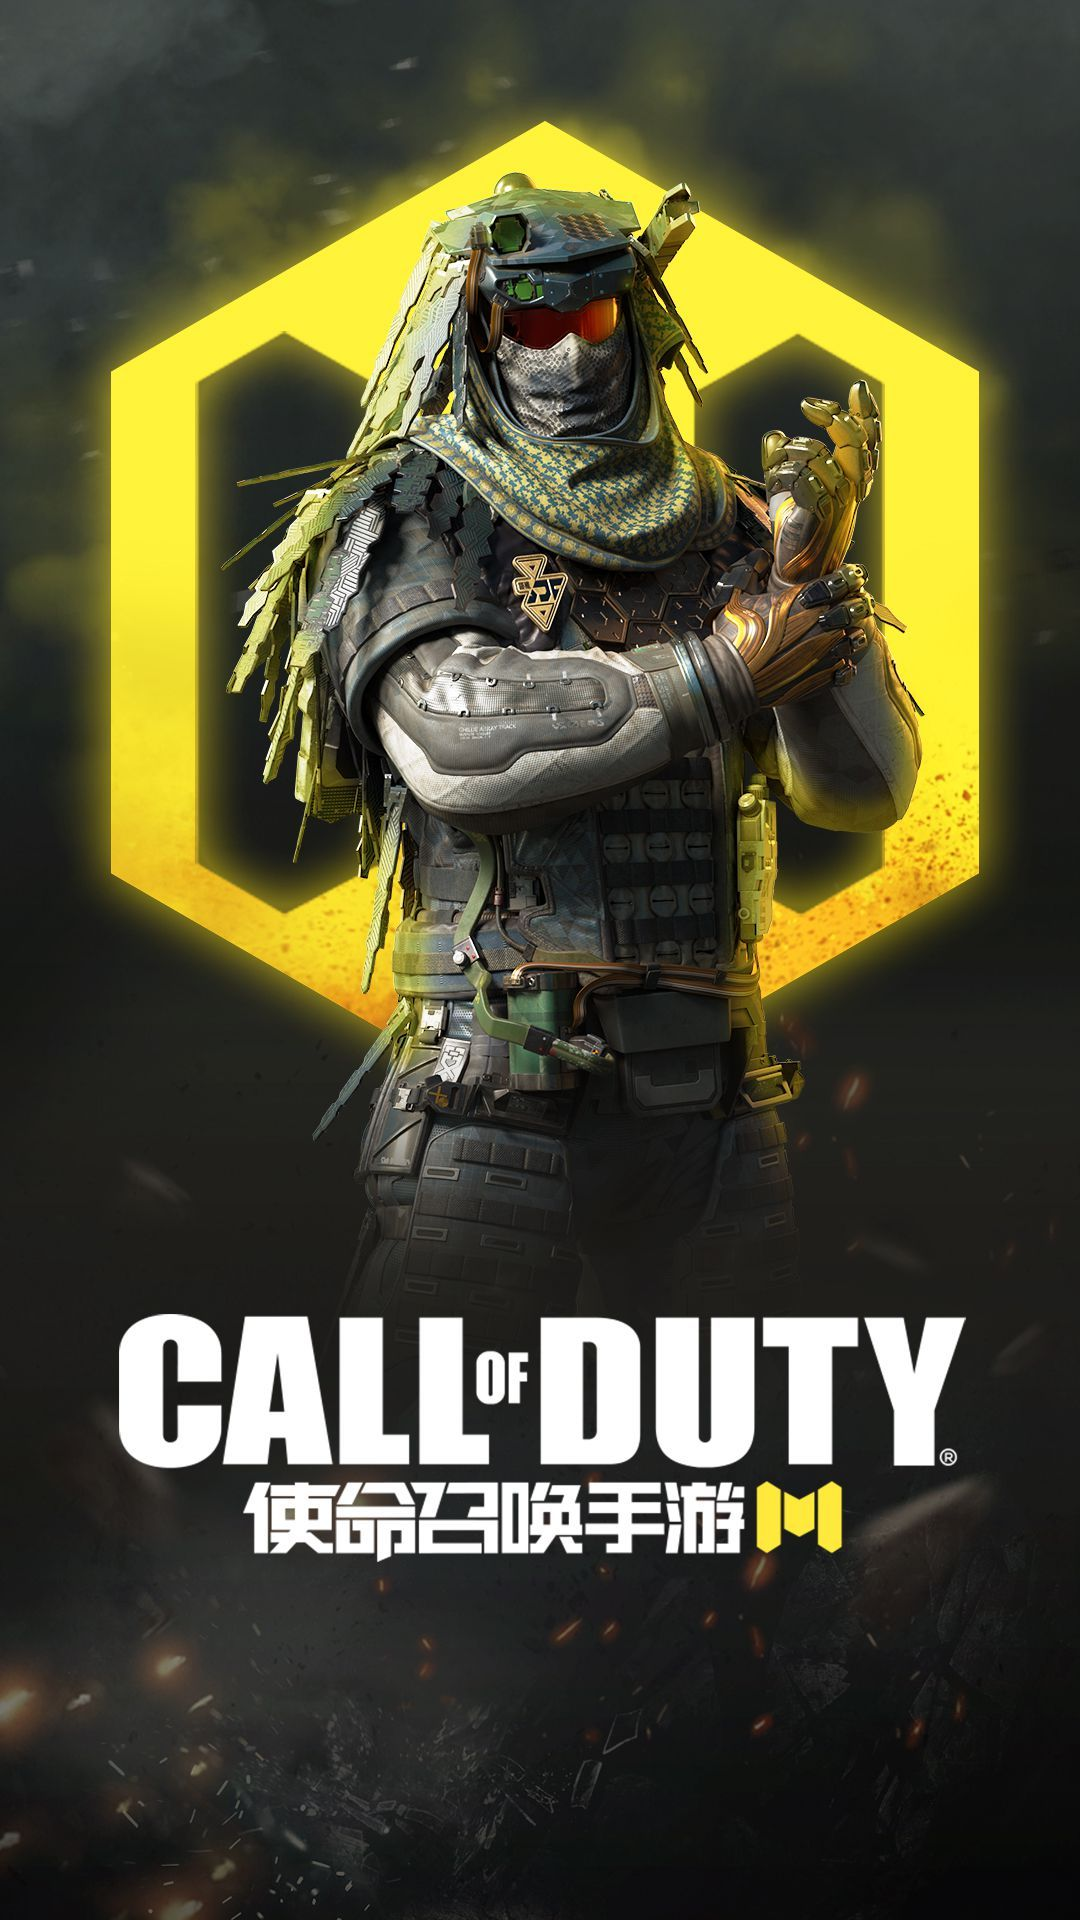 aesthetic call of duty logo mobile